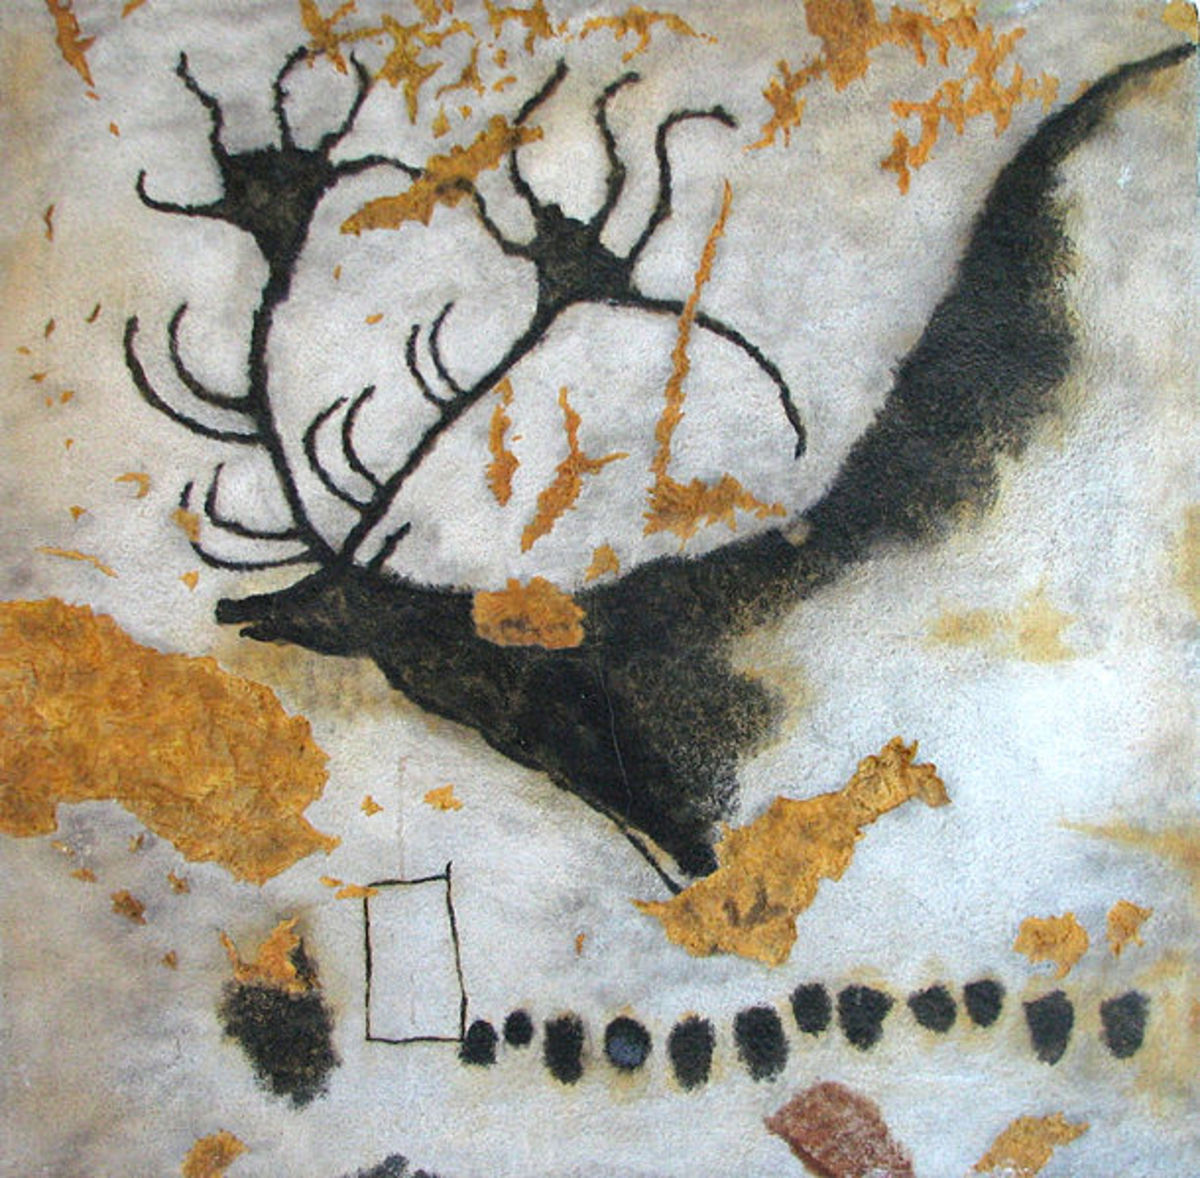 The giant deer as depicted by cro-magnon man in the caves of Lascaux.